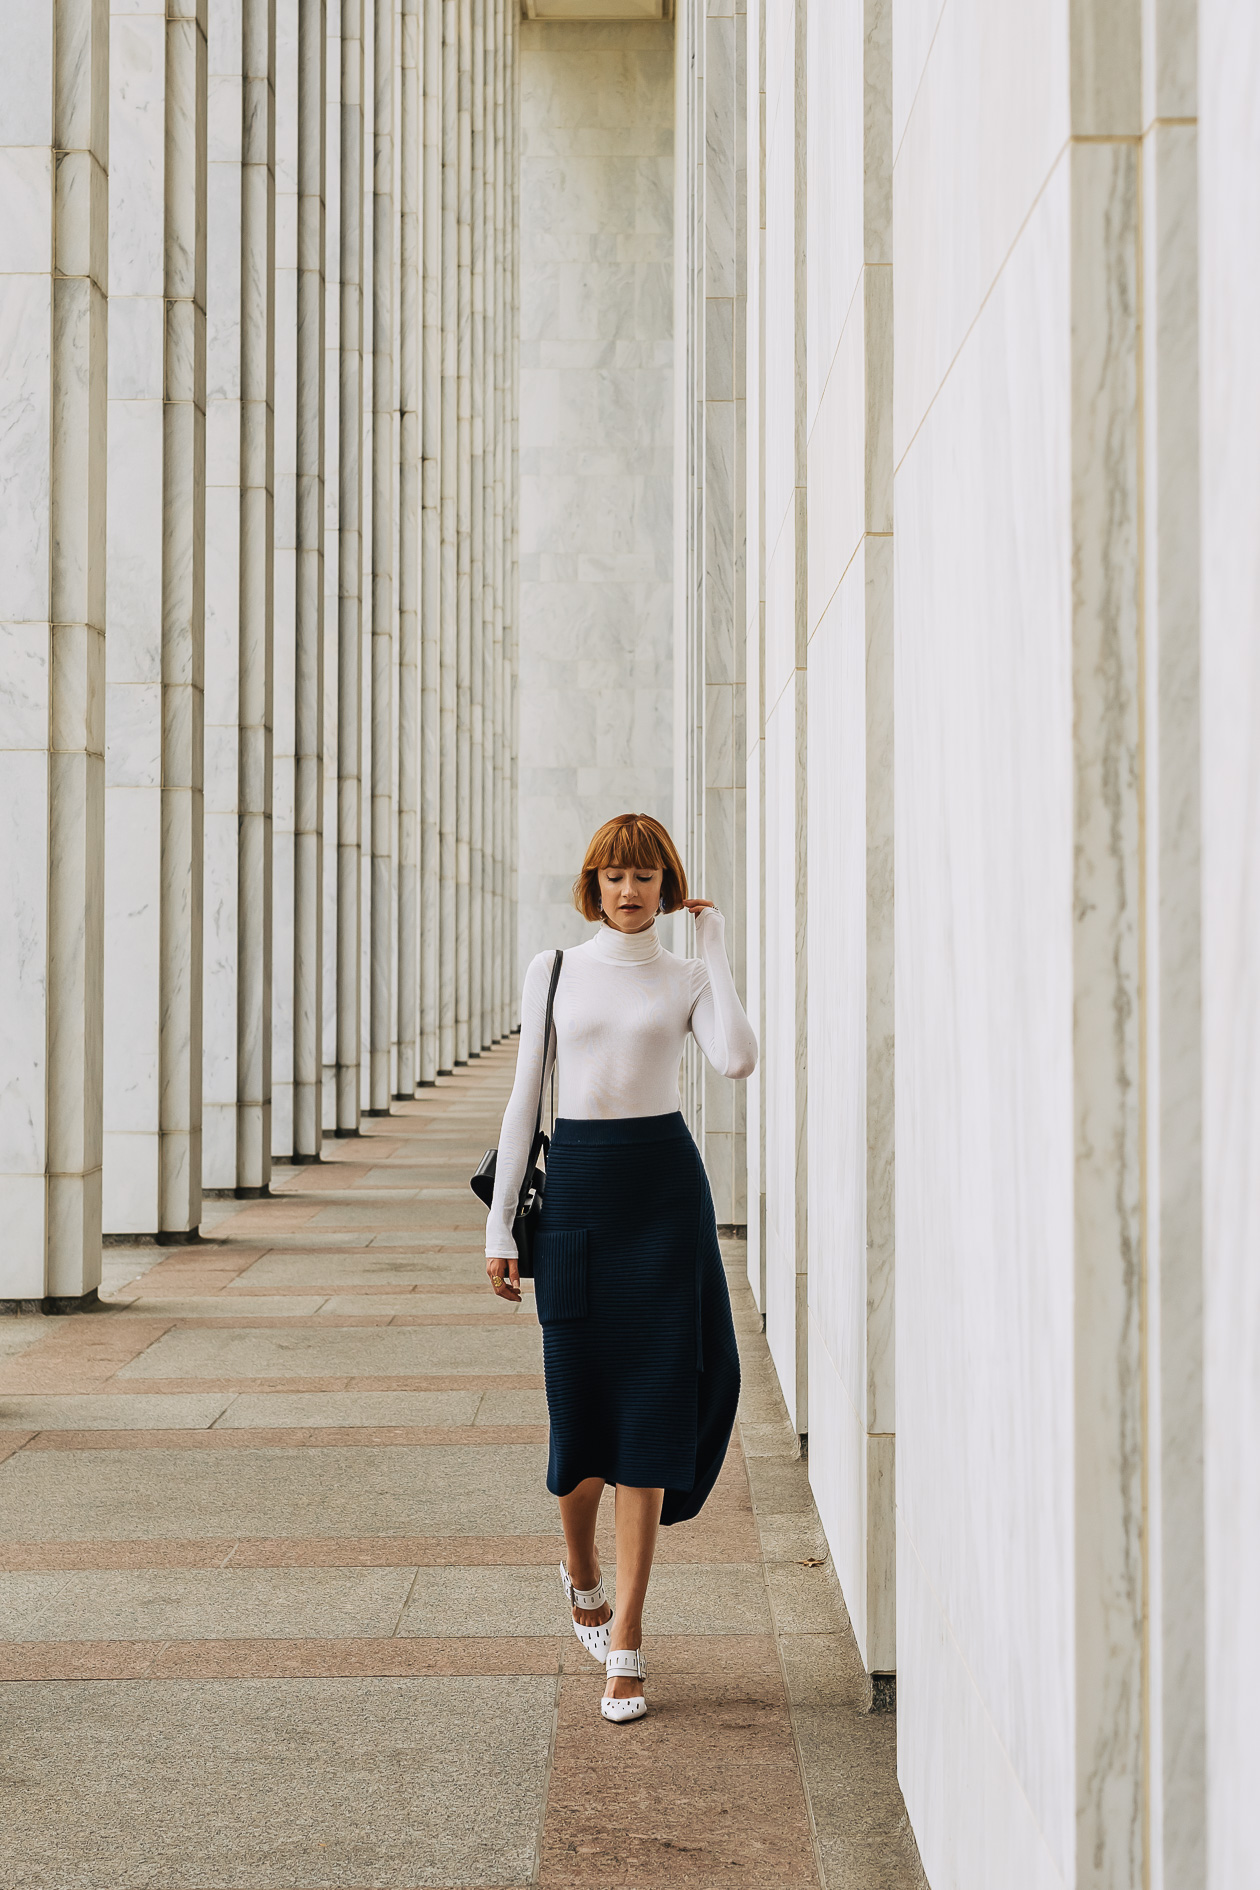 Tibi knit skirt and turtleneck